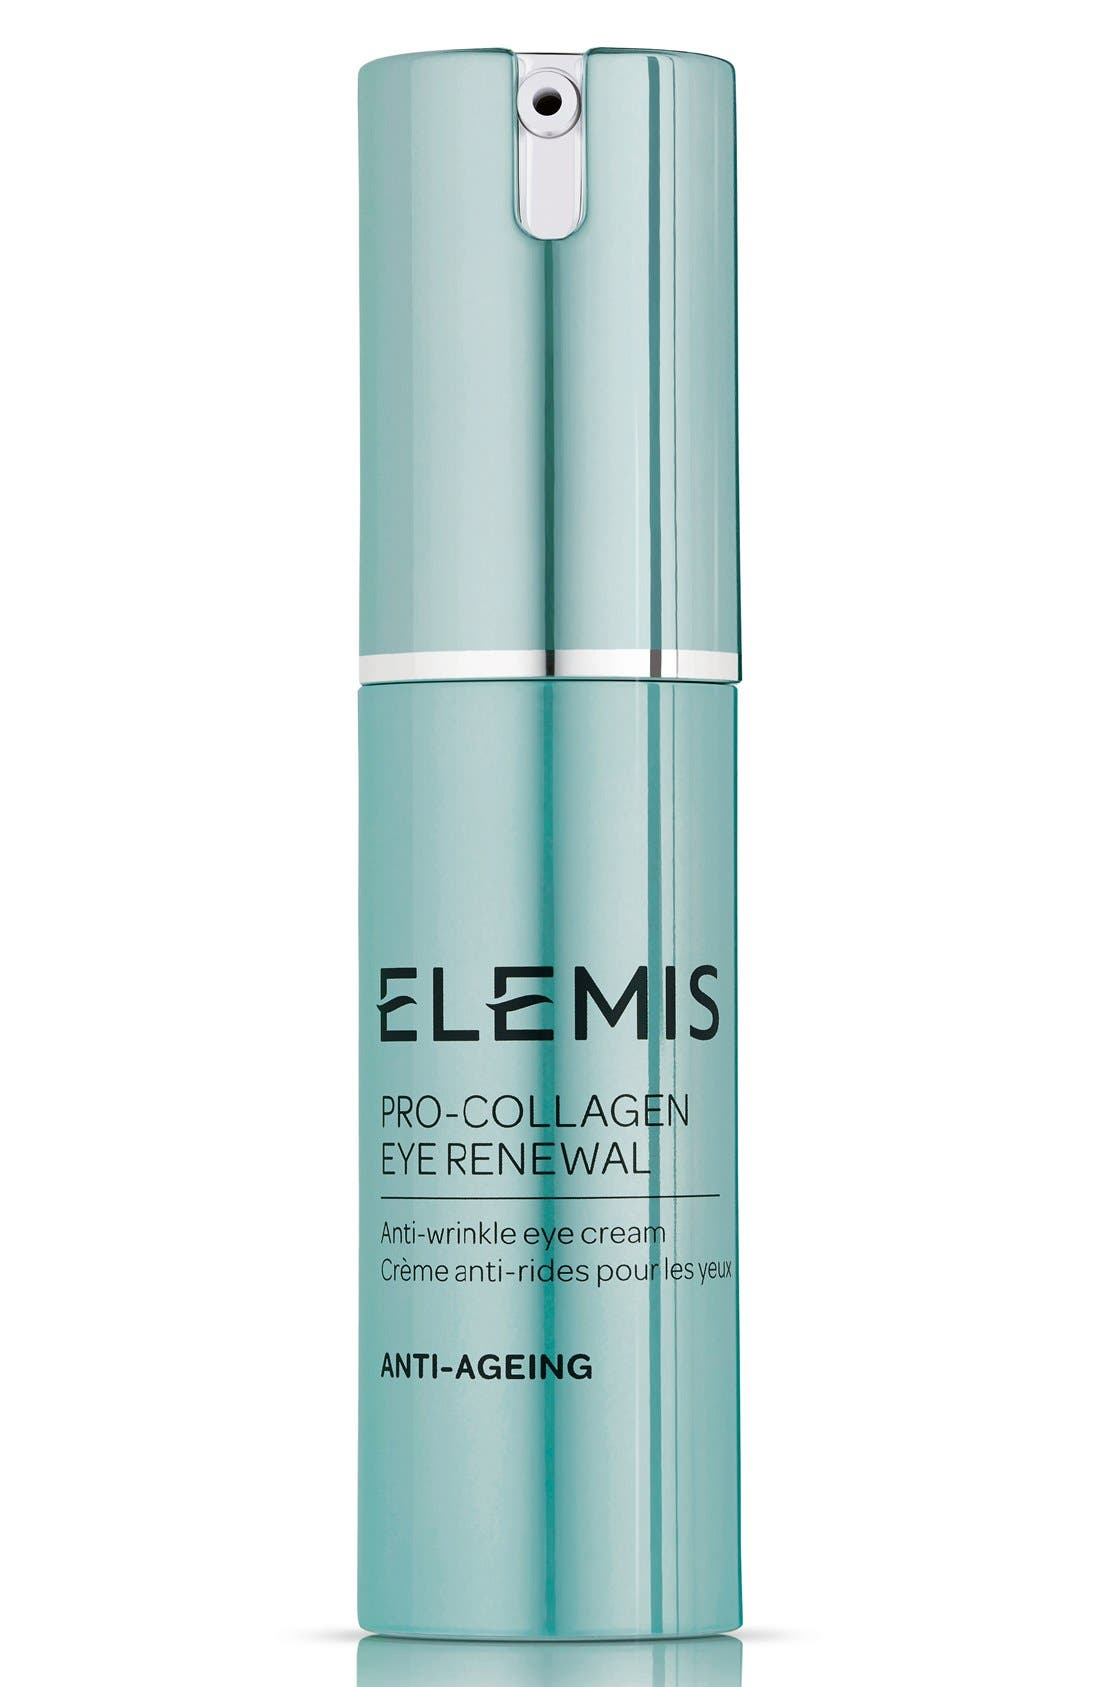 Elemis Pro-Collagen Eye Renewal Cream